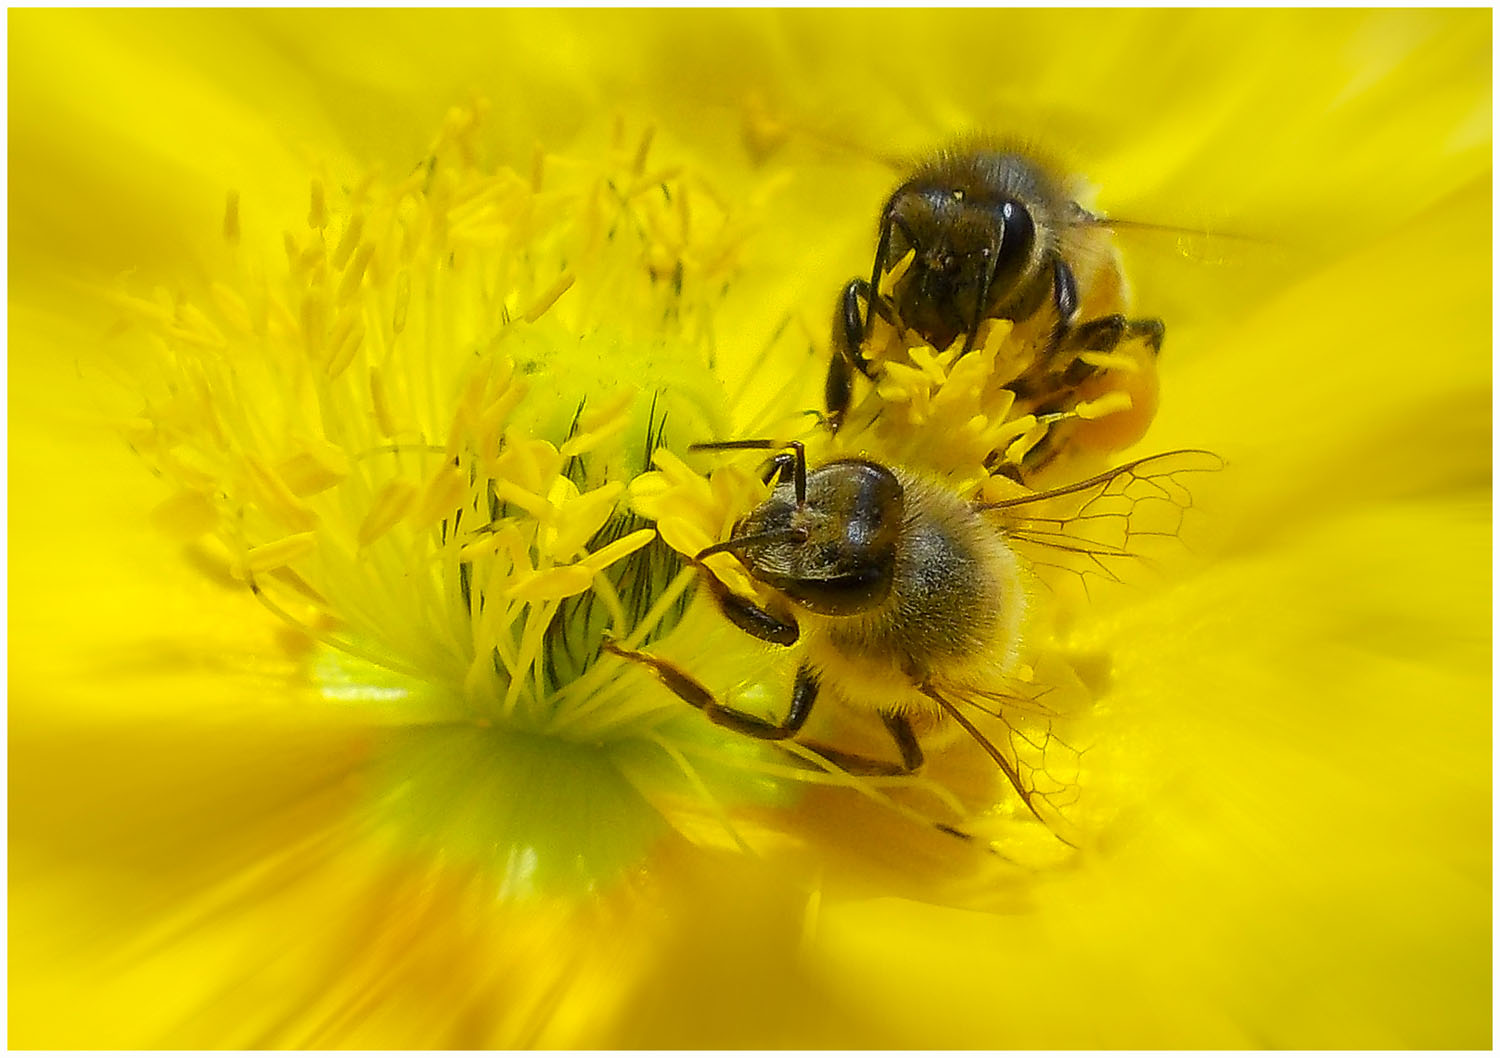 Taken with a Nikon Coolpix L25 compact, in our garden at Dalmeny. I couldn't resist the beautiful yellow flowers - neither could the bees!